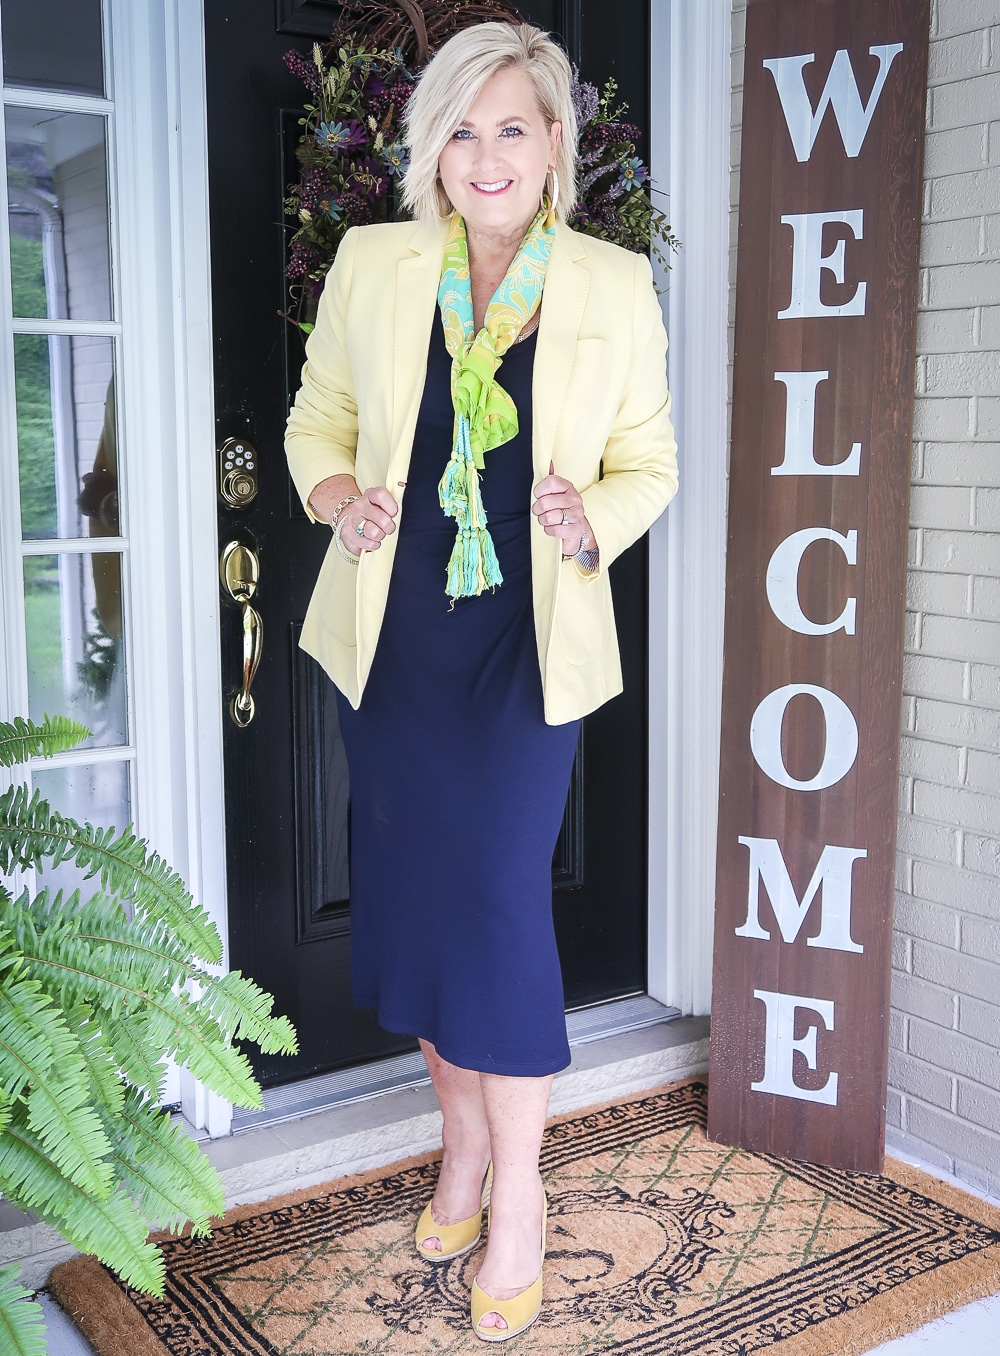 Fashion Blogger 50 Is Not Old is wearing a navy midi dress with a pale lemon yellow blazer, a bright scarf, and a pair of yellow espadrille wedge shoes